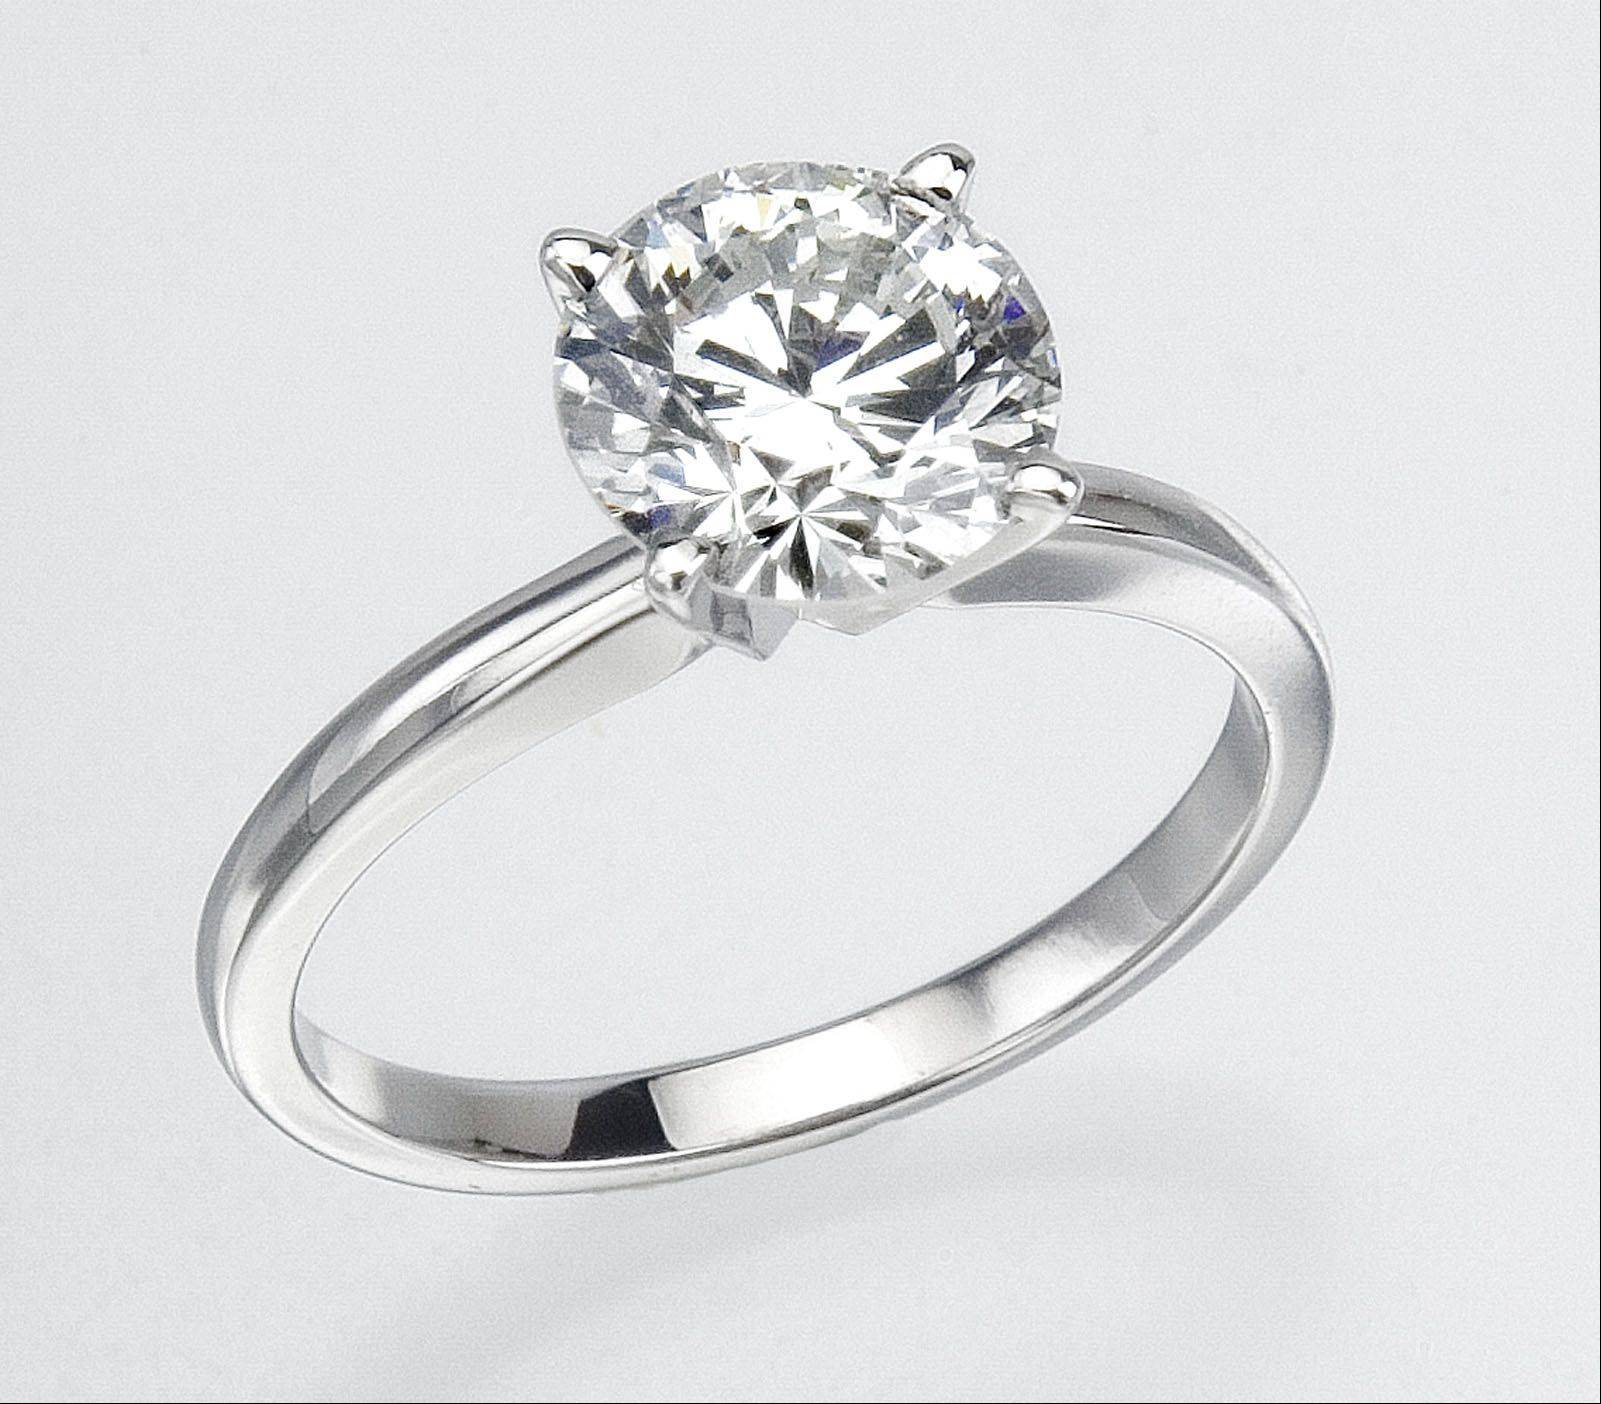 Engagement rings and wedding bands from online jewelers can cost more than 20 percent less, experts say. That's because you're not paying the extra overhead costs of traditional retailers. And online retailers, such as Blue Nile Inc. and James Allen, usually have more styles to choose from than their physical rivals.